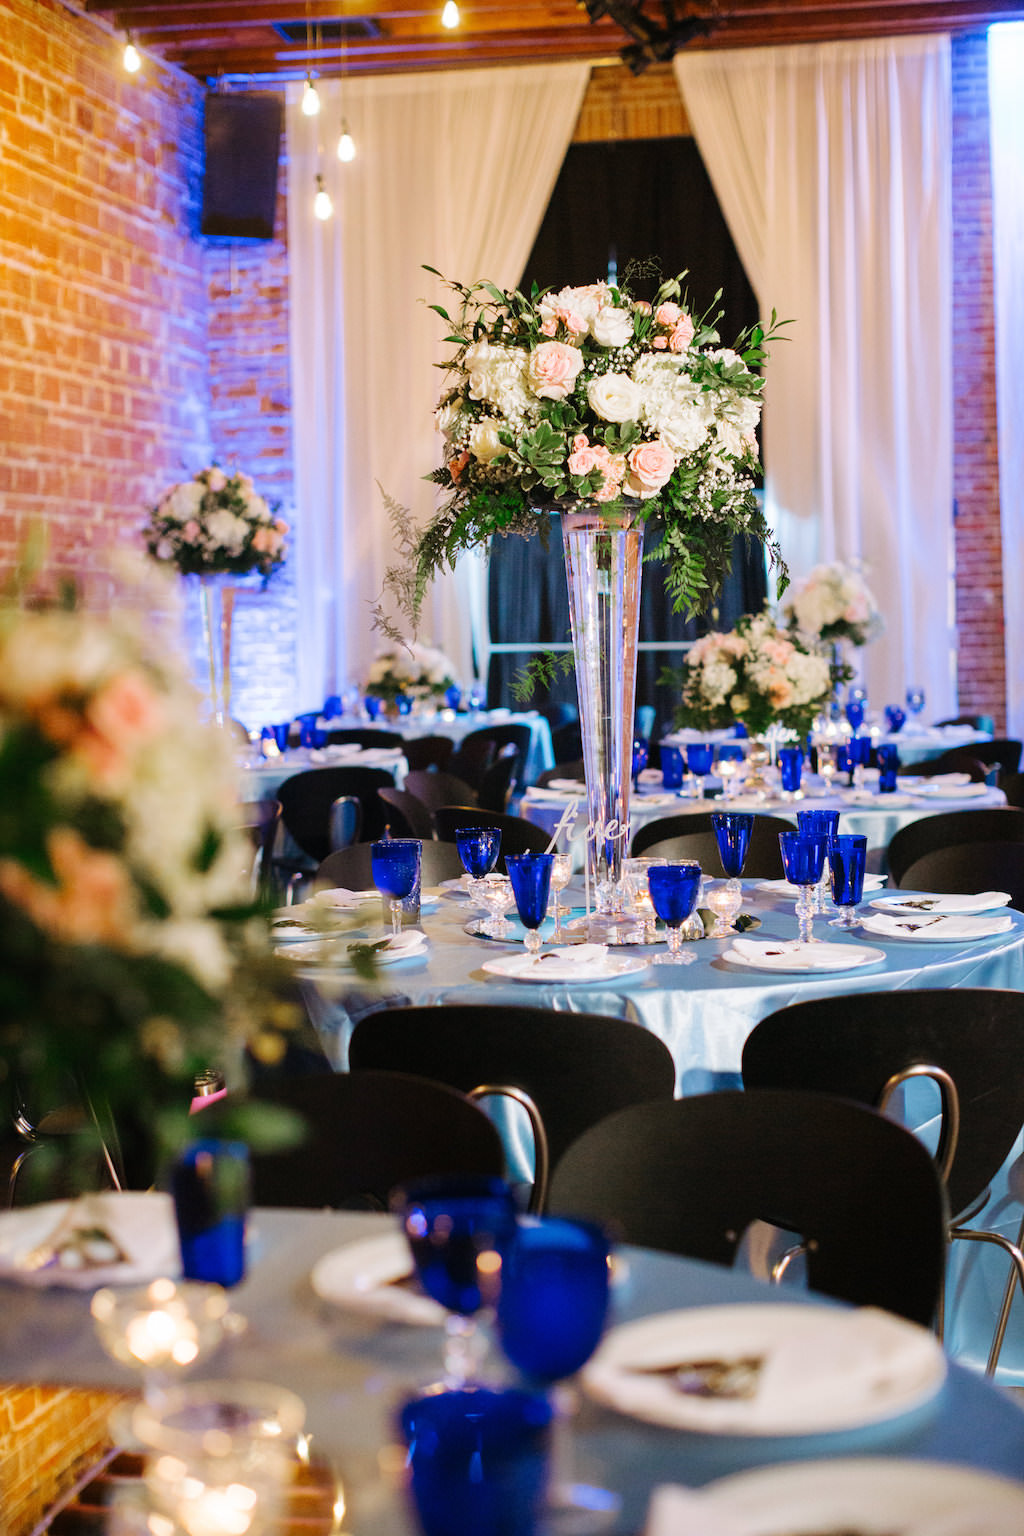 Modern, Romantic Reception Wedding Decor, Tall Floral Centerpieces with White, Peach, Pink, Ivory Flowers, Round Tables with Silver Tablecloths, Blue Stemware | Tampa Bay Premier Wedding Venue NOVA 535 in Downtown St. Pete